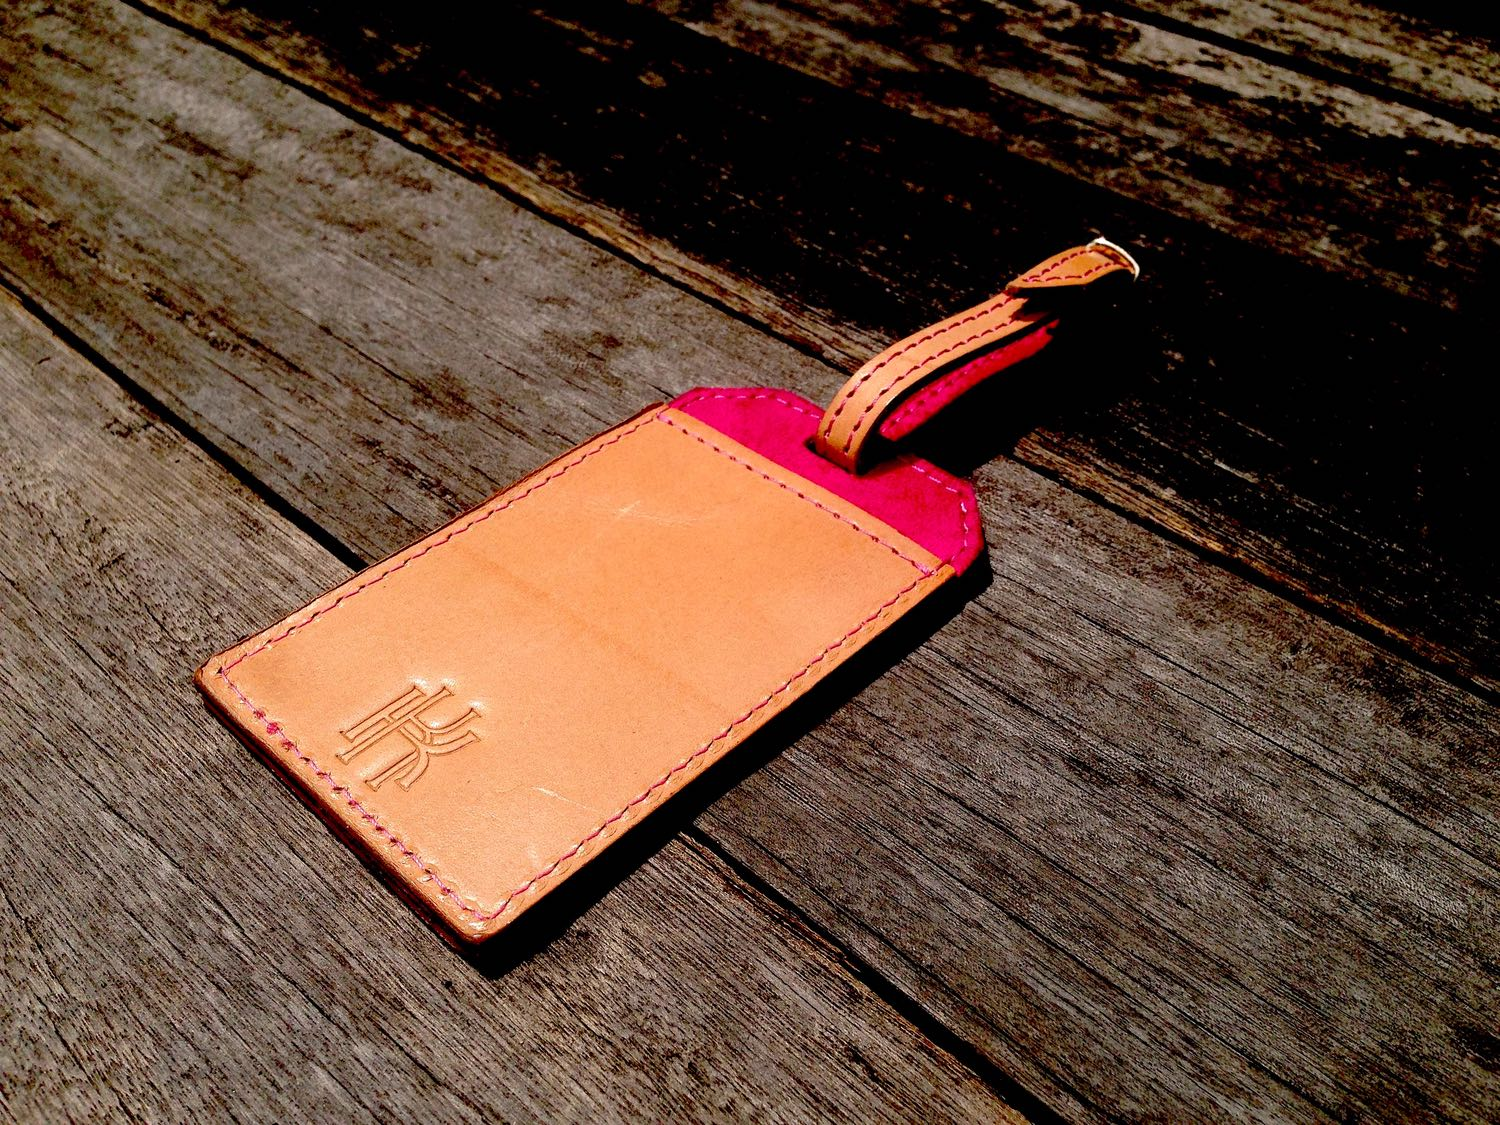 34life-corporate-events-workshops-gifts-products-designs-leather-monogram-personalise-gift-luggagetag-01w.jpg